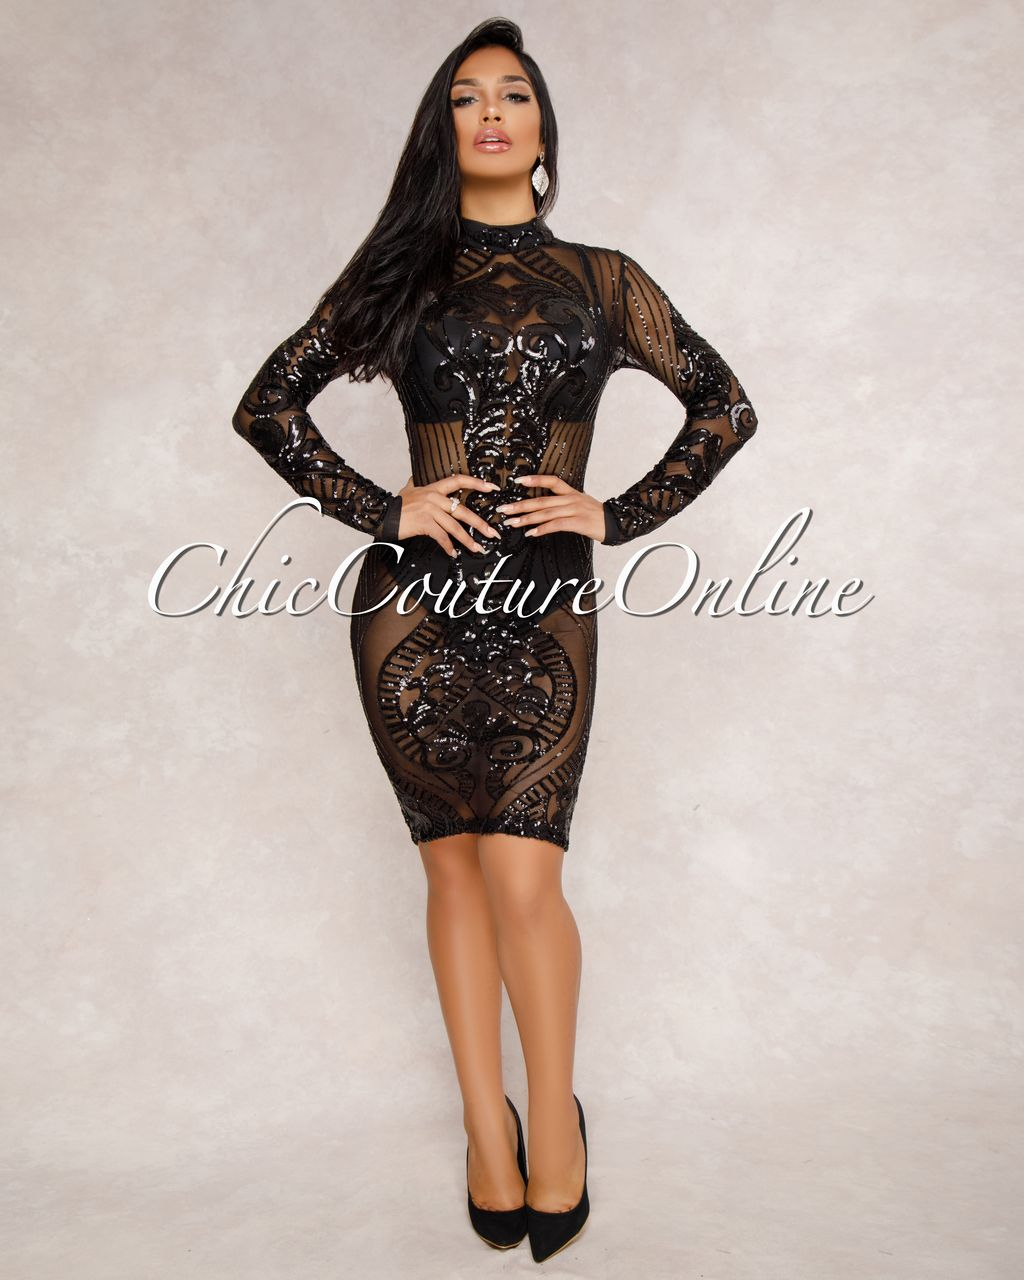 1a9c0f76e6e2 Chic Couture Online - Krystal Black Sequin Semi-Sheer Dress, (http:/